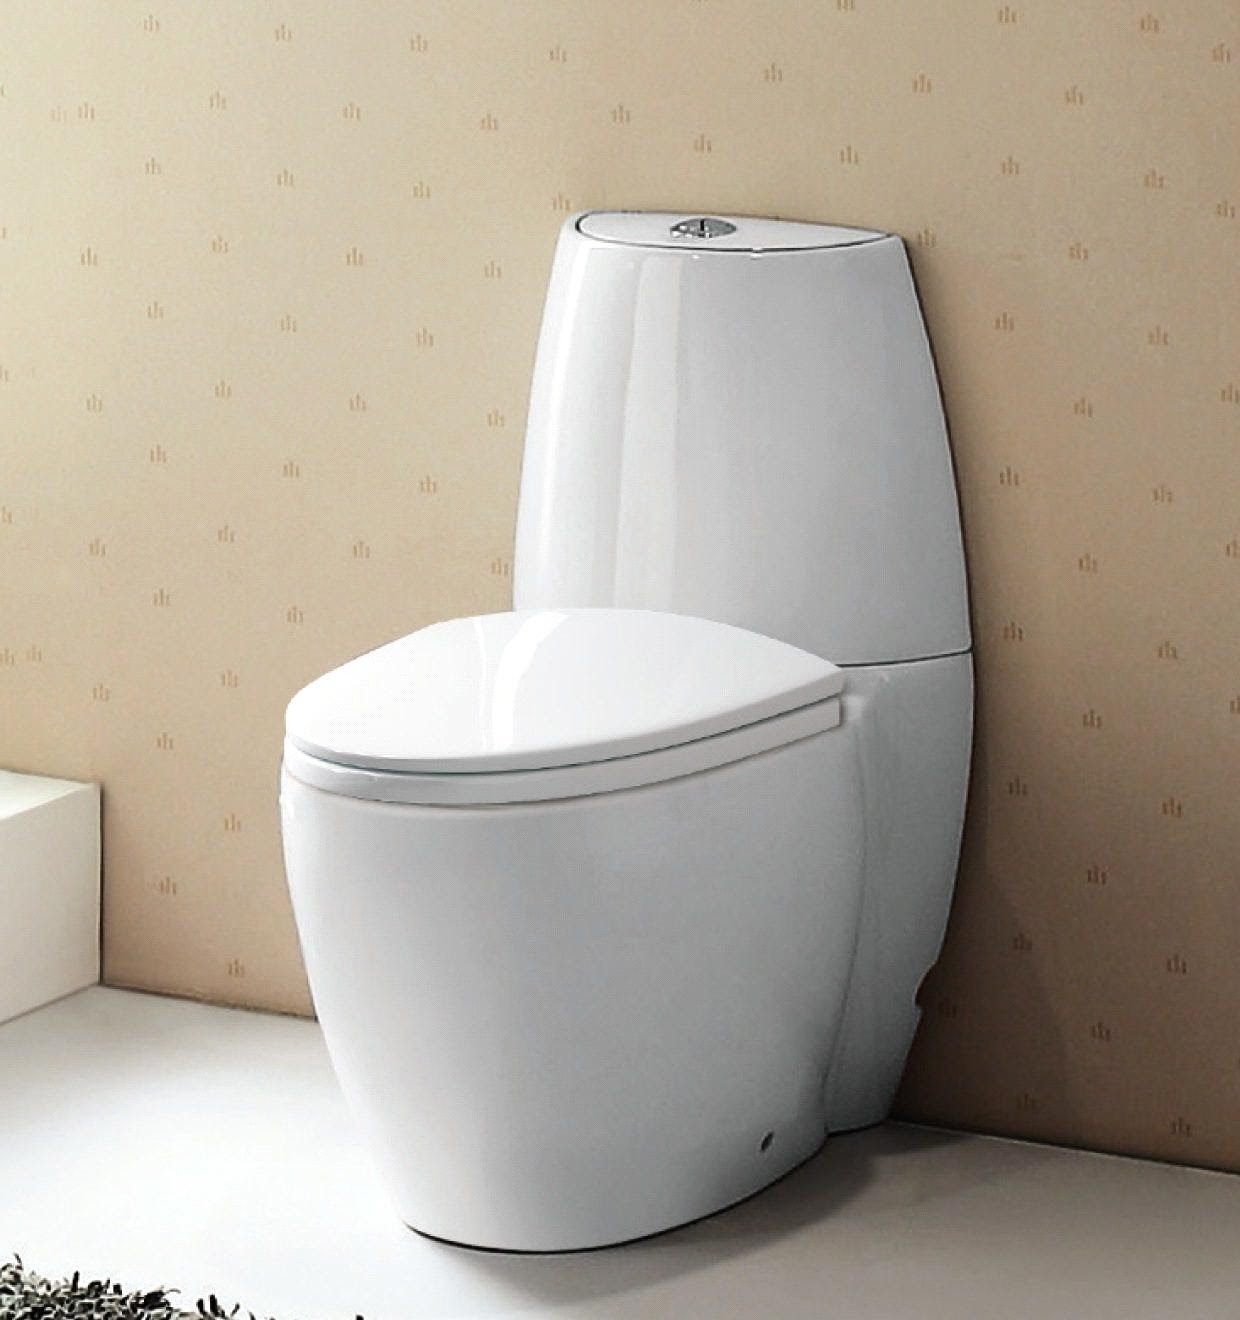 Bathroom Water Closet Home And Garden